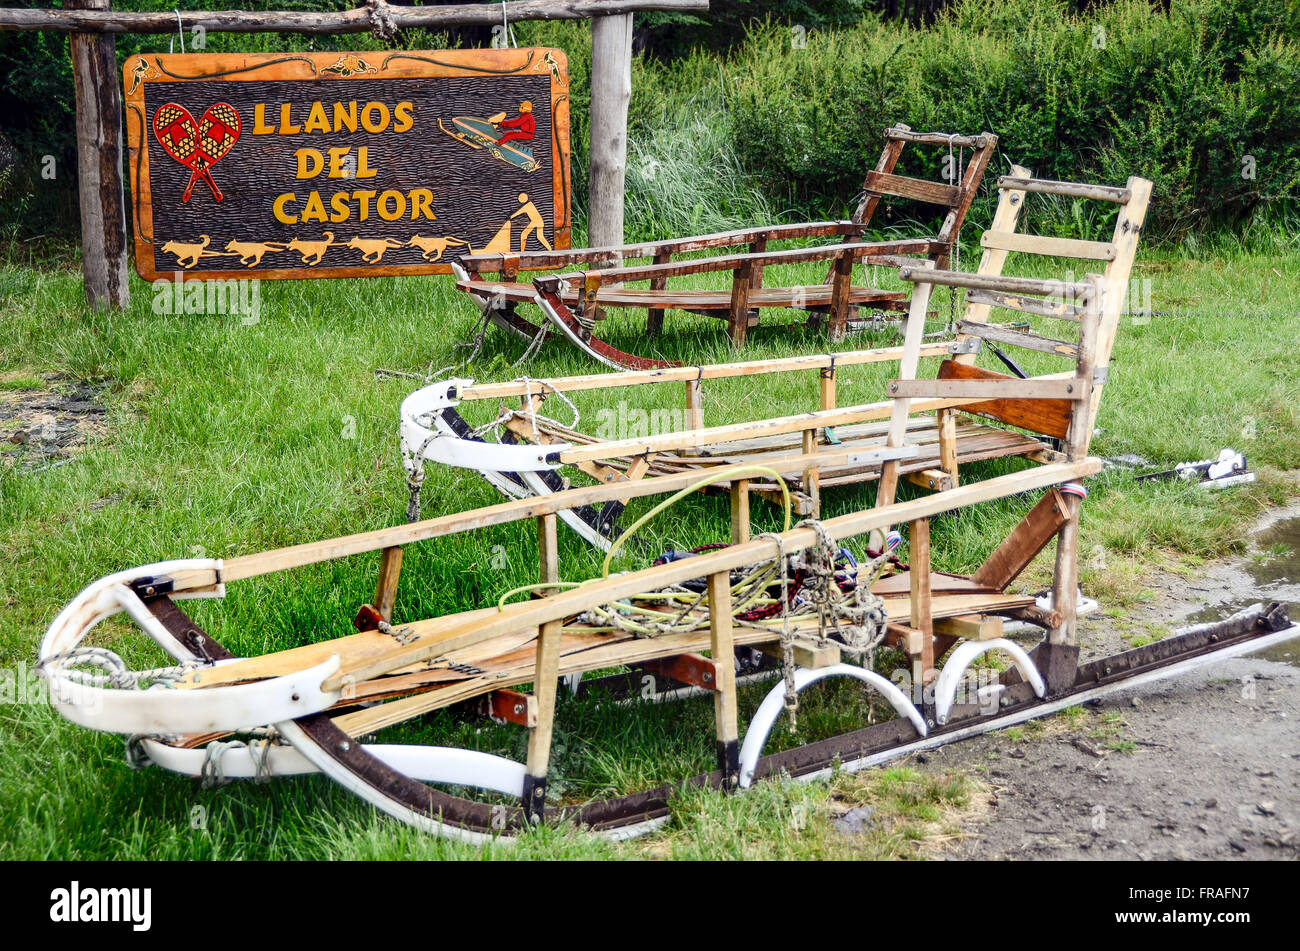 Models of sleds pulled by dogs in Llanos del Castor - Stock Image